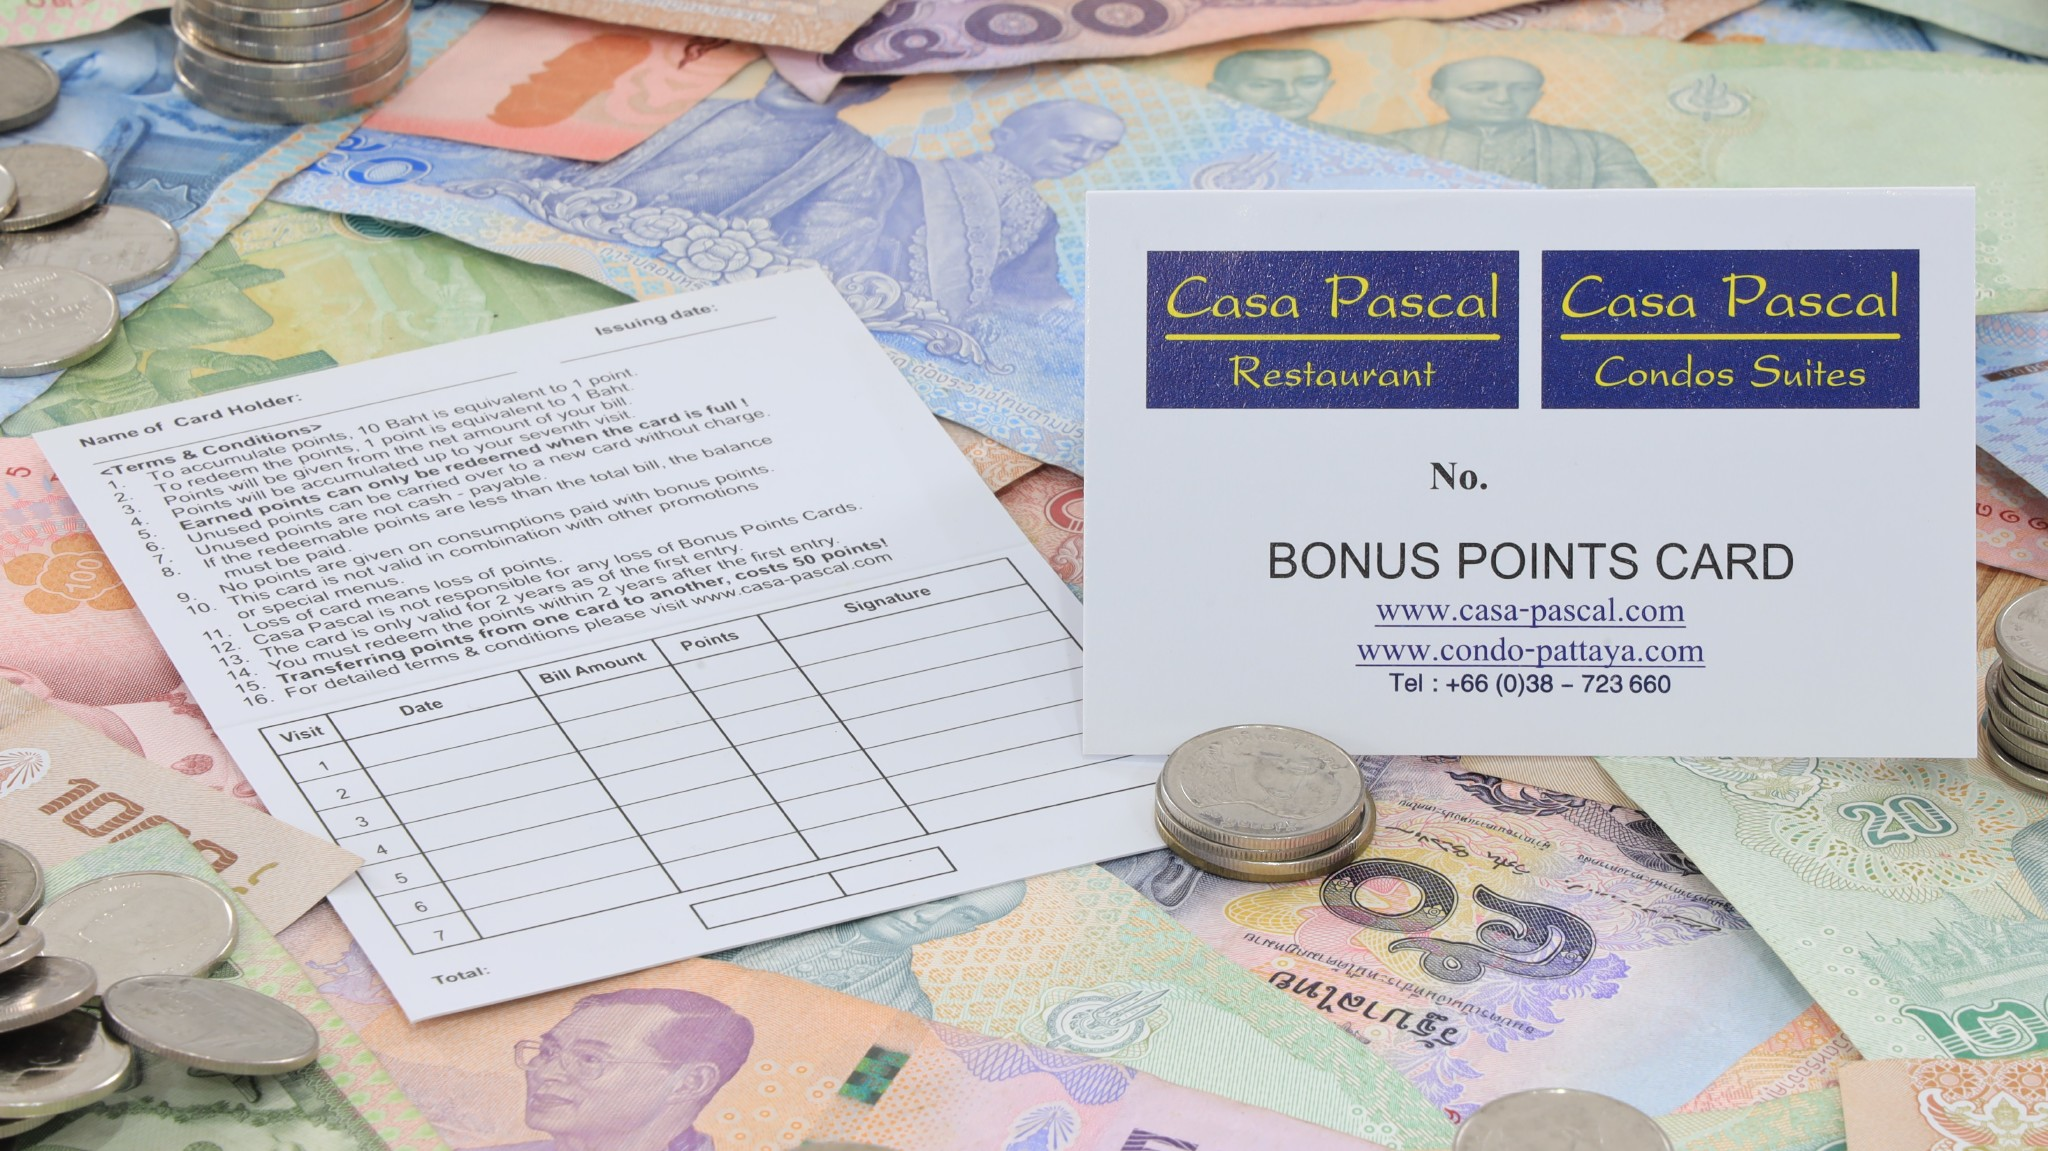 Bonus point card